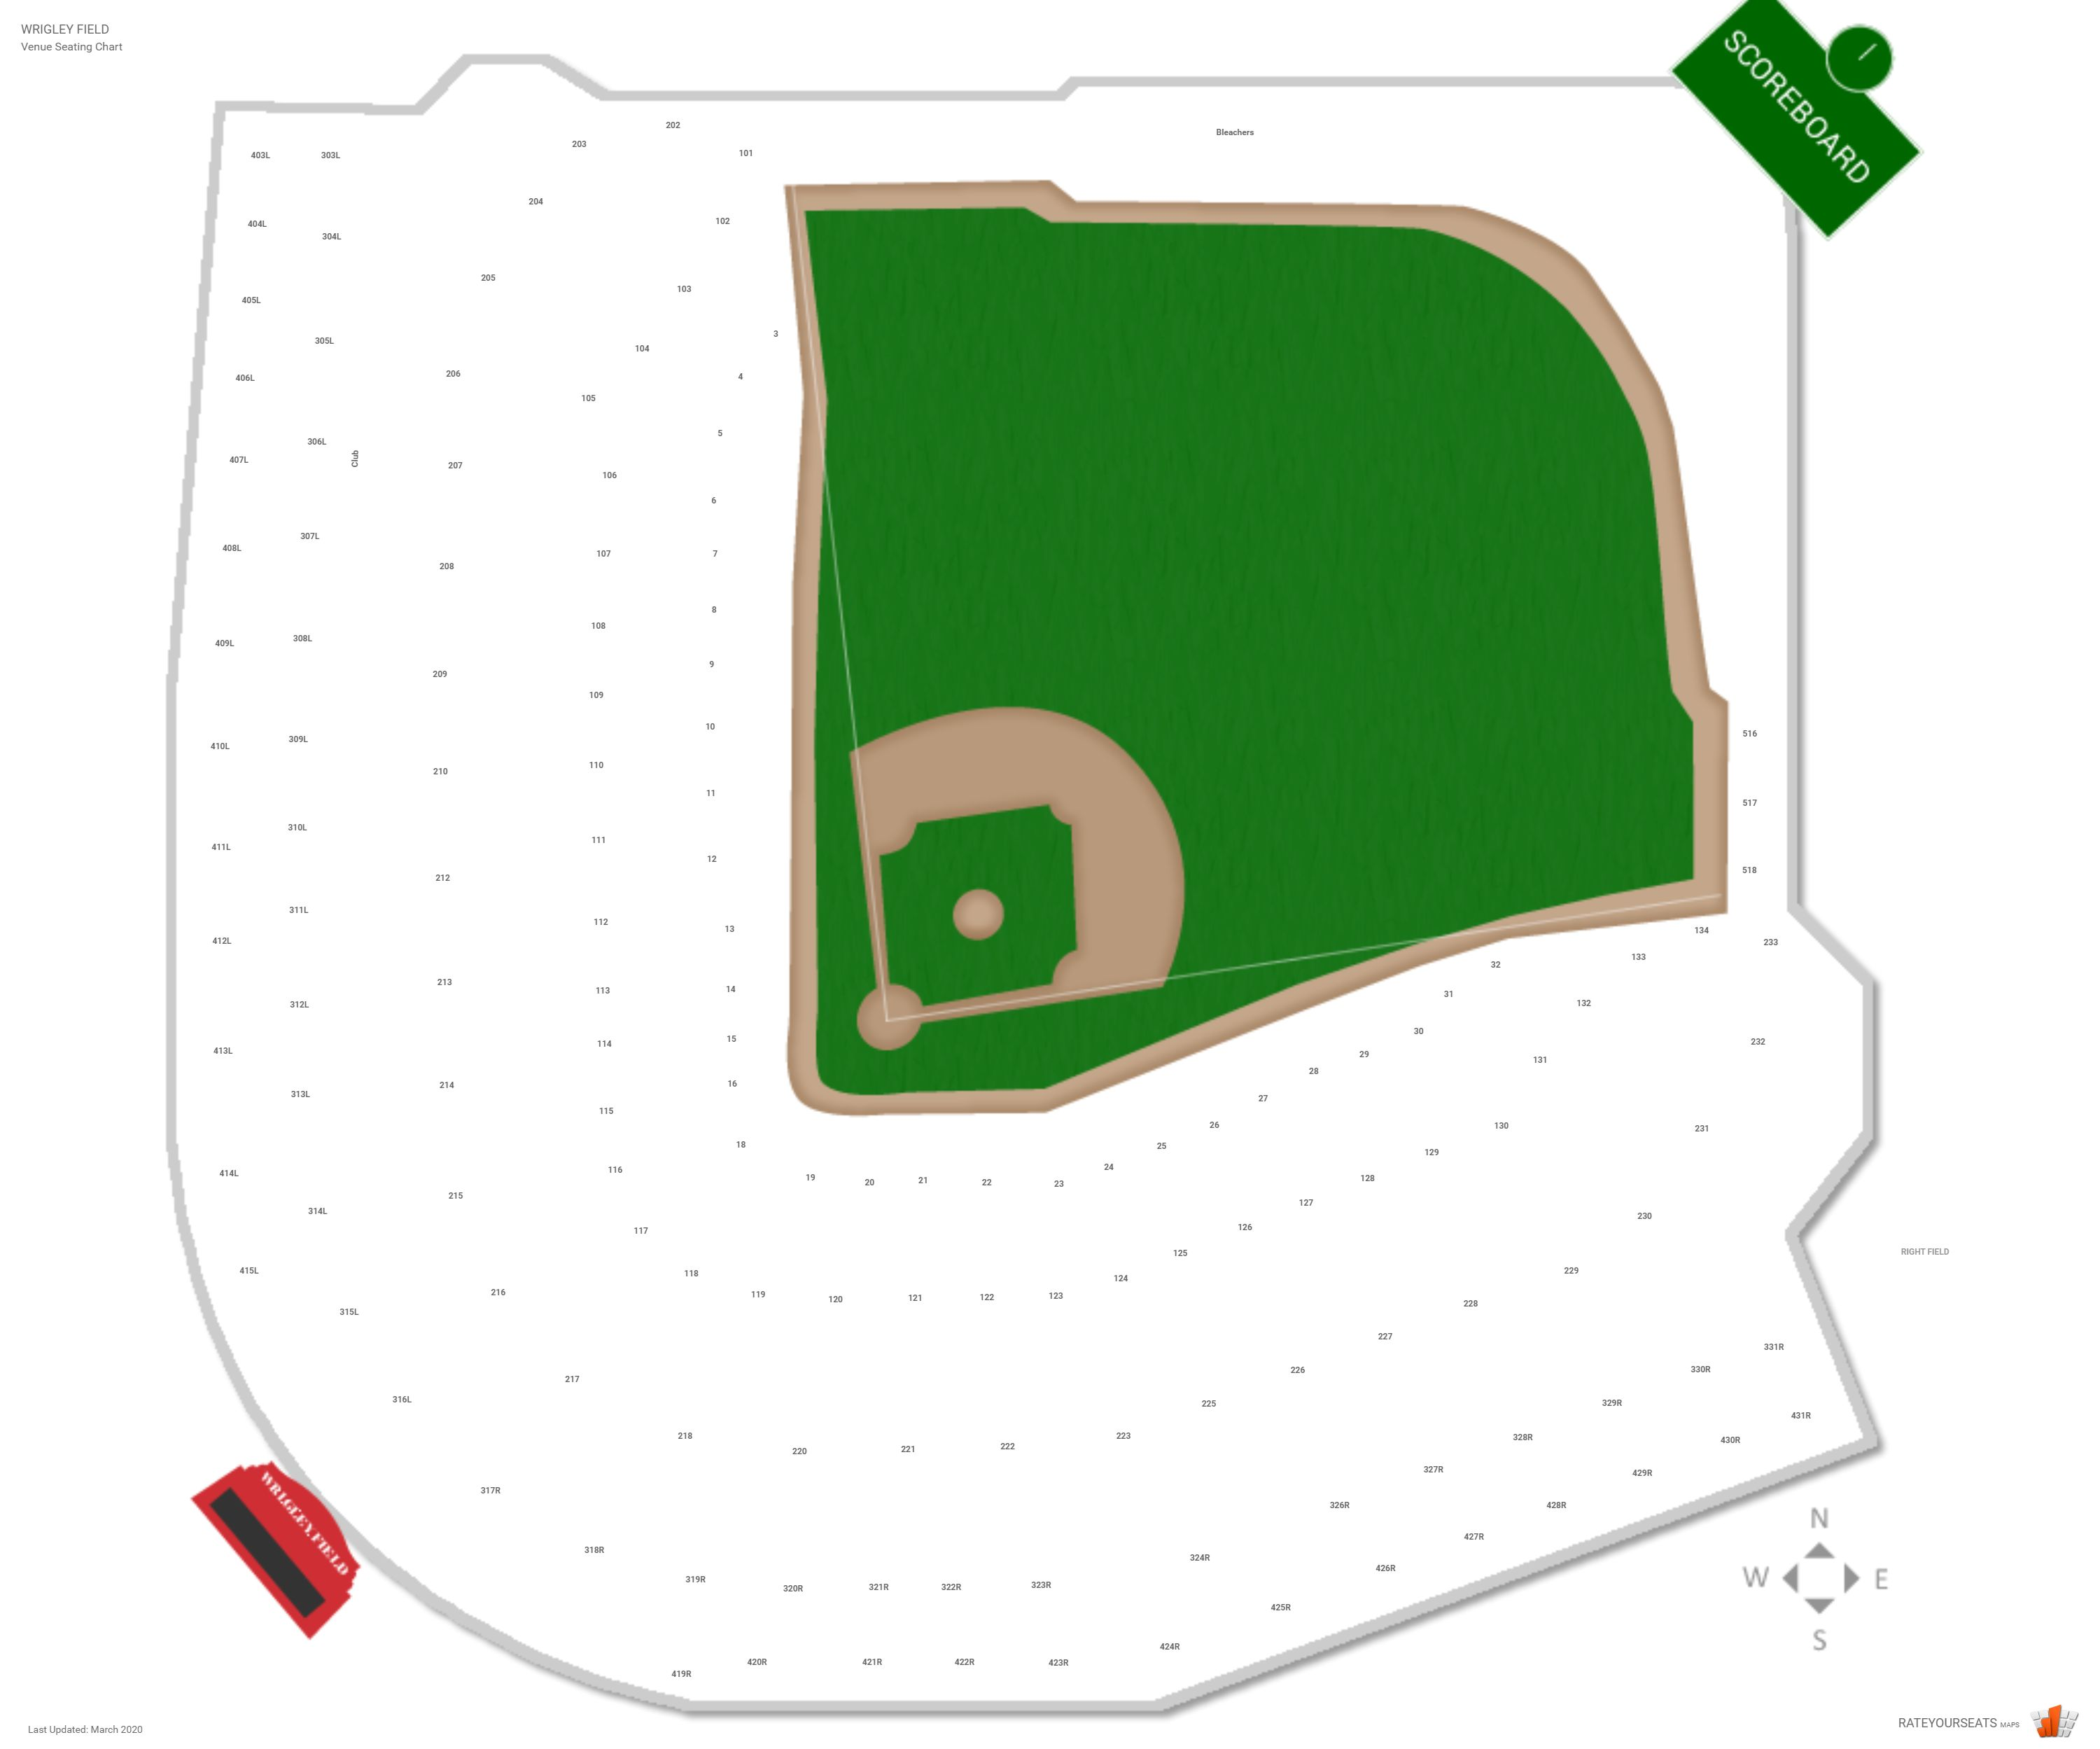 Wrigley Field Seating Chart With Row Numbers